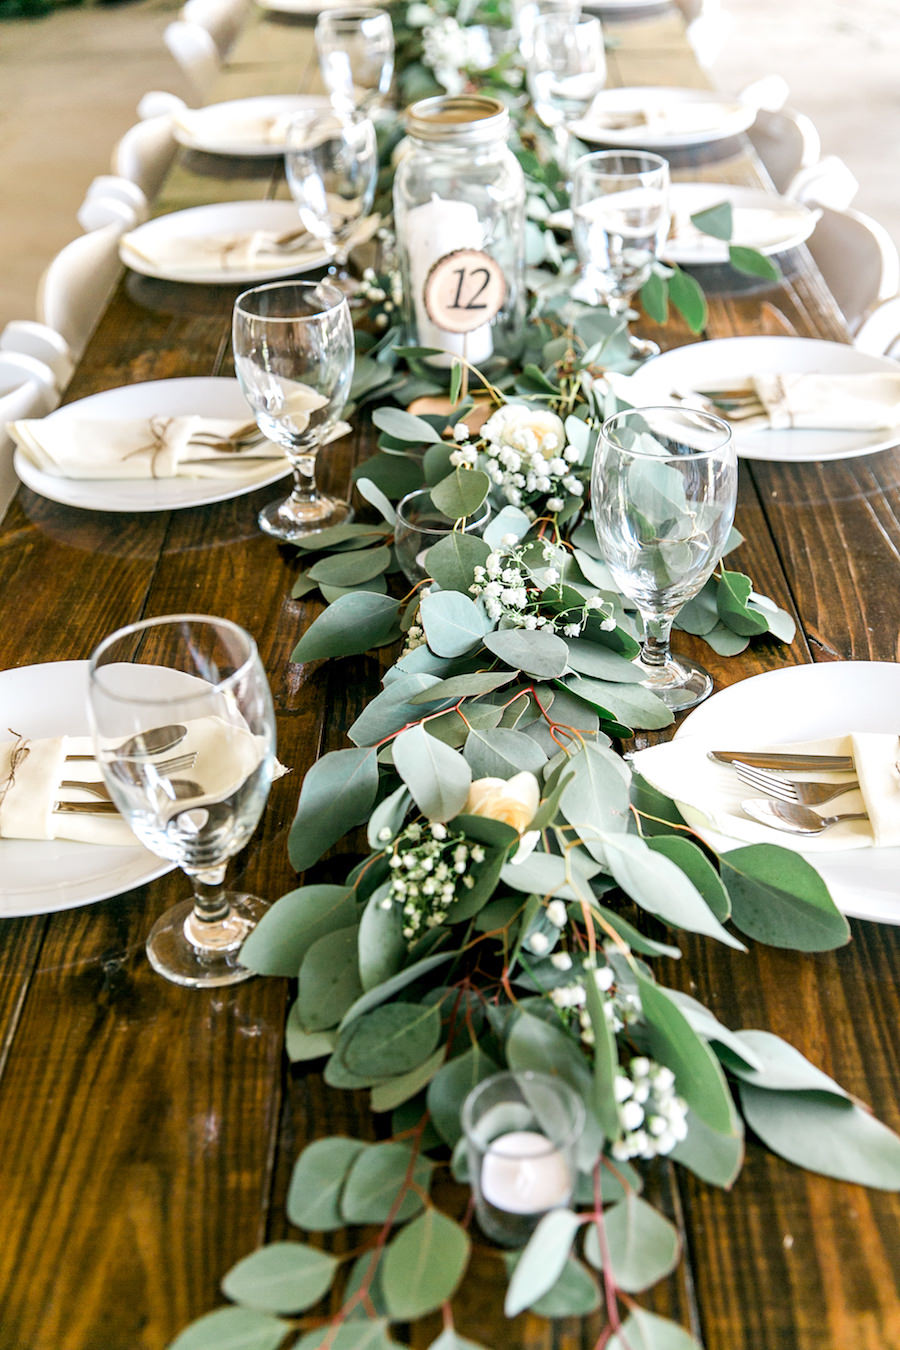 Long Feasting Table with Garland Greenery Centerpieces and Wooden Farm Tables     Rustic, Country Wedding Reception Decor Inspiration